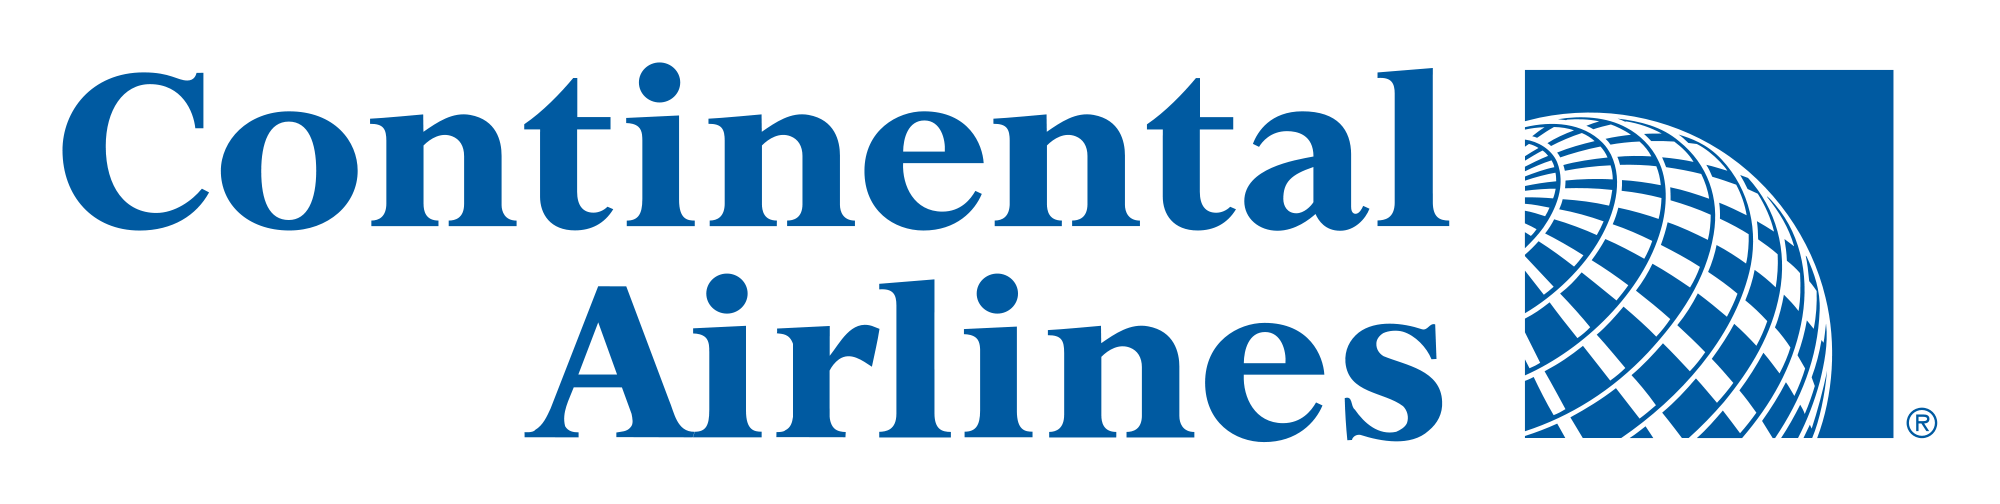 Airlines Logo Png Airlines Logo.png